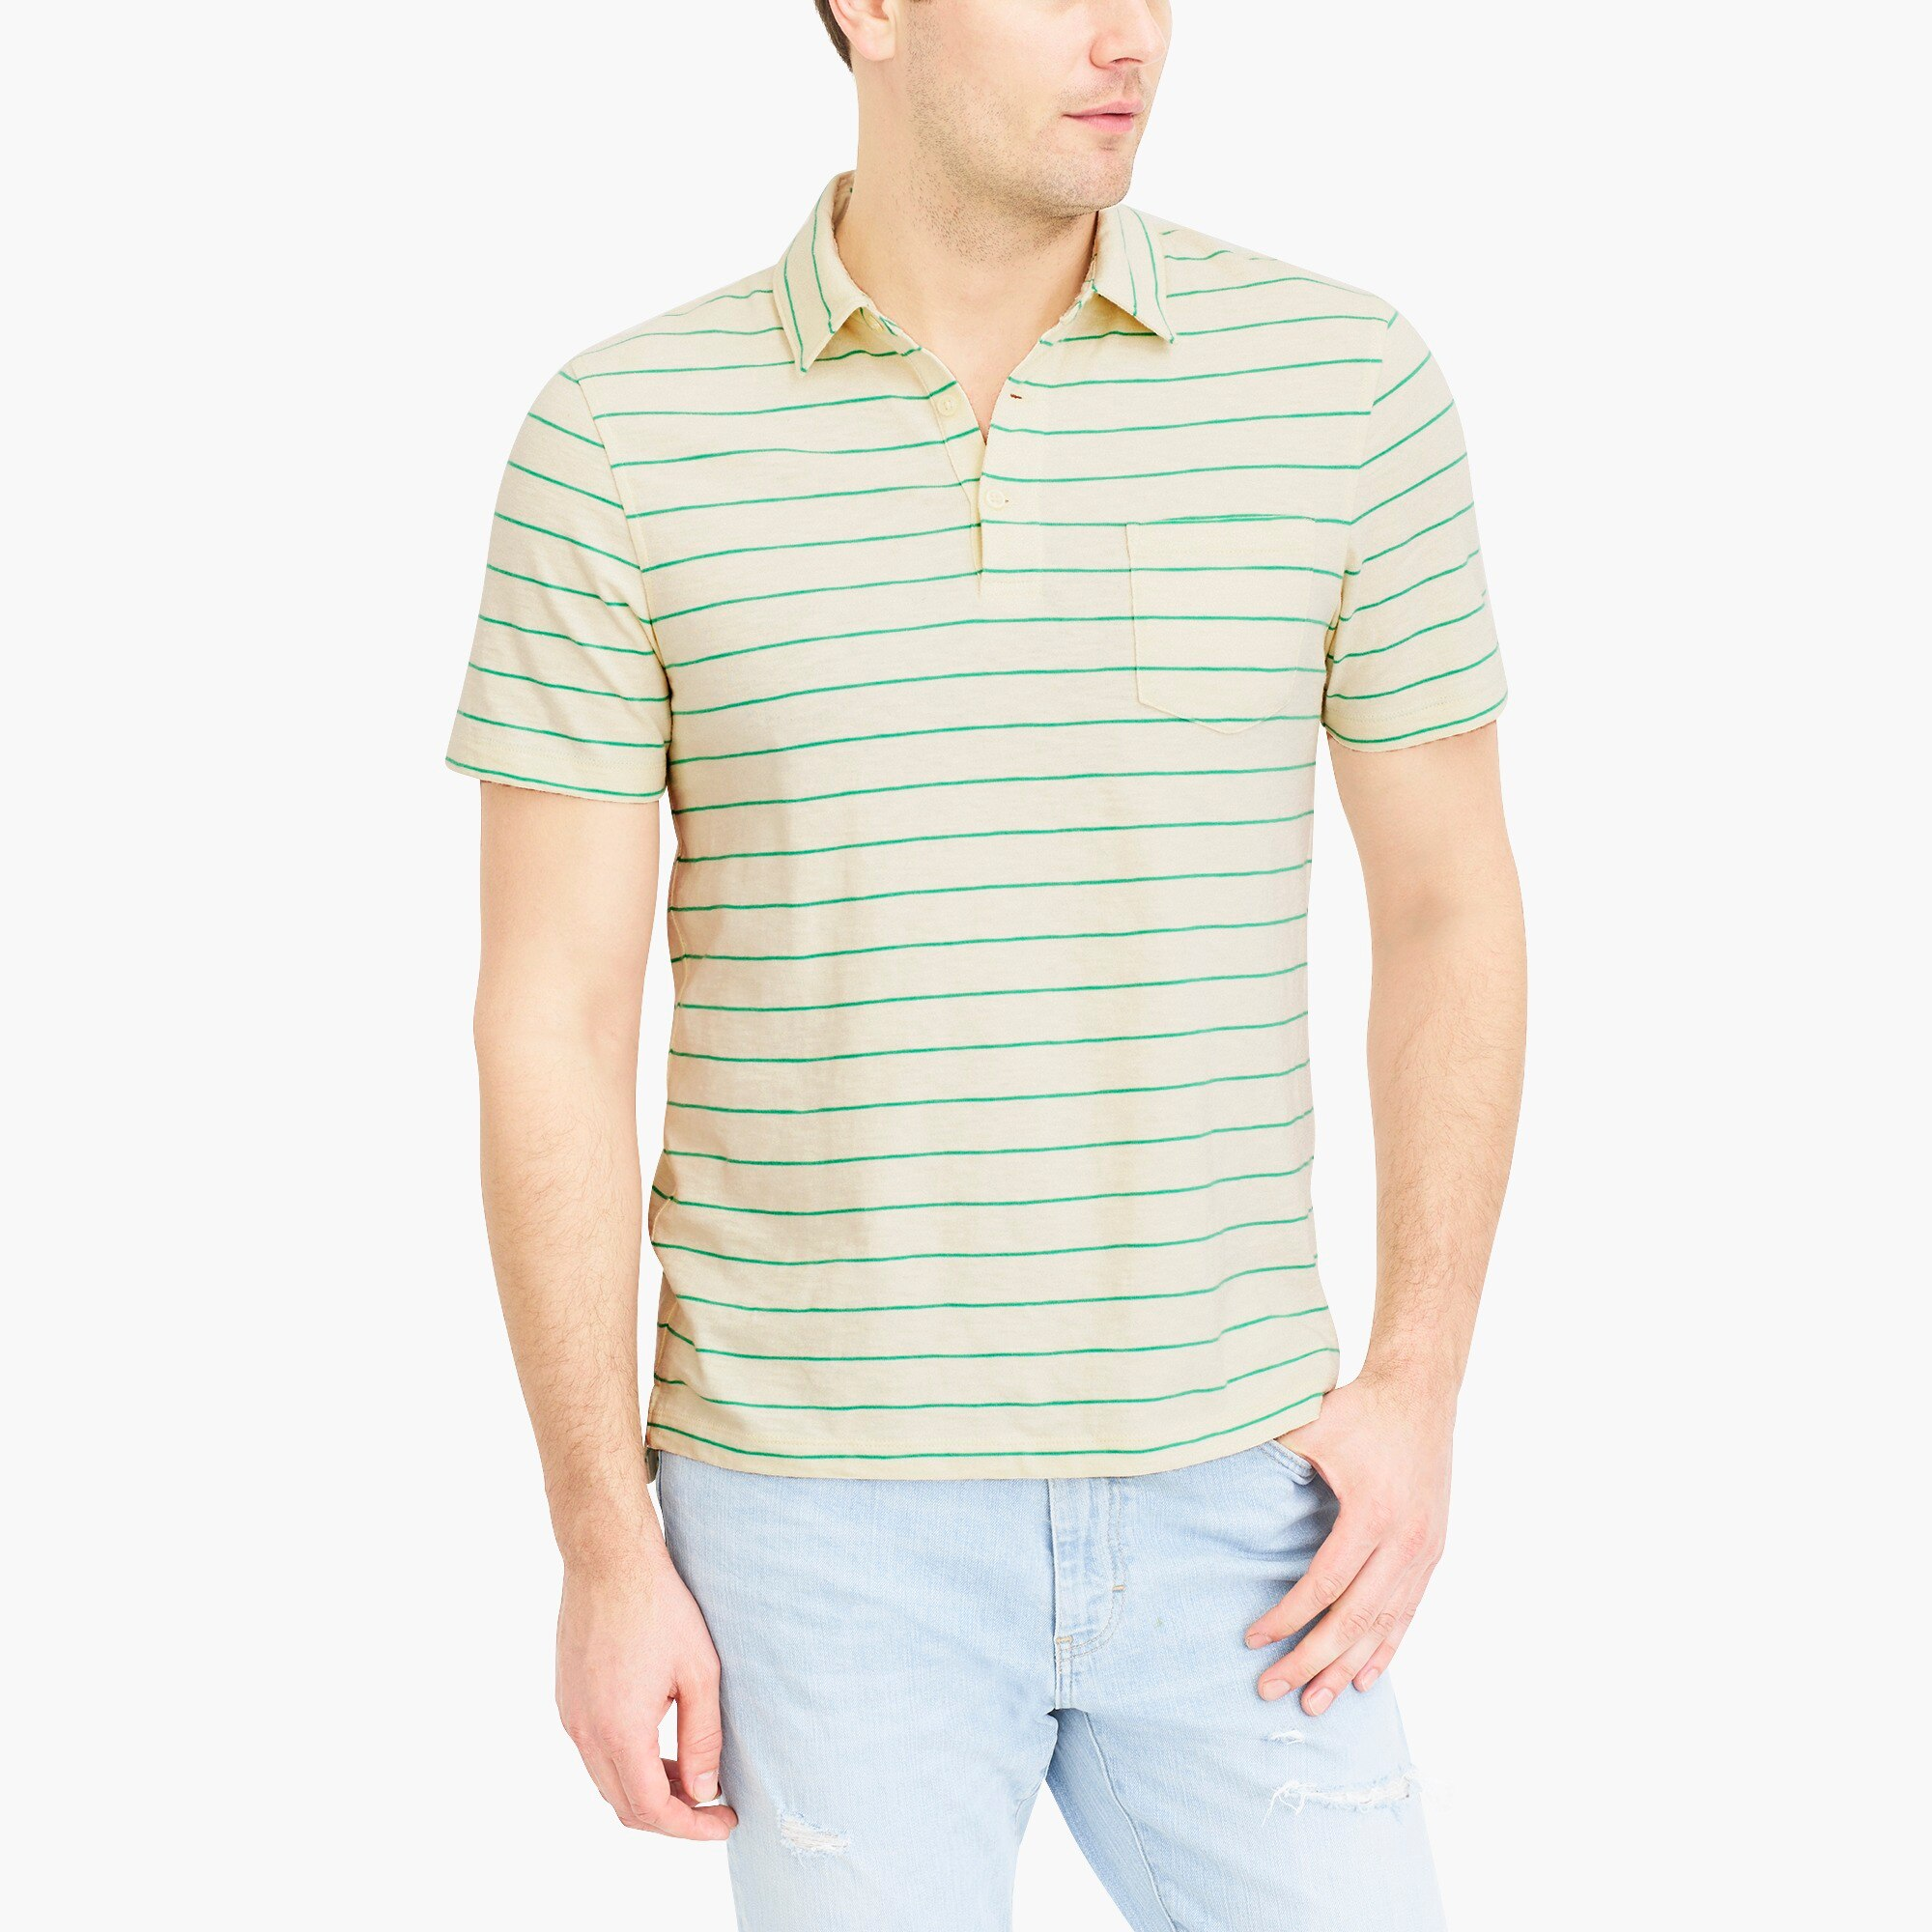 striped short-sleeve polo shirt in slub cotton : factorymen the score: men's tech shorts and performance polos